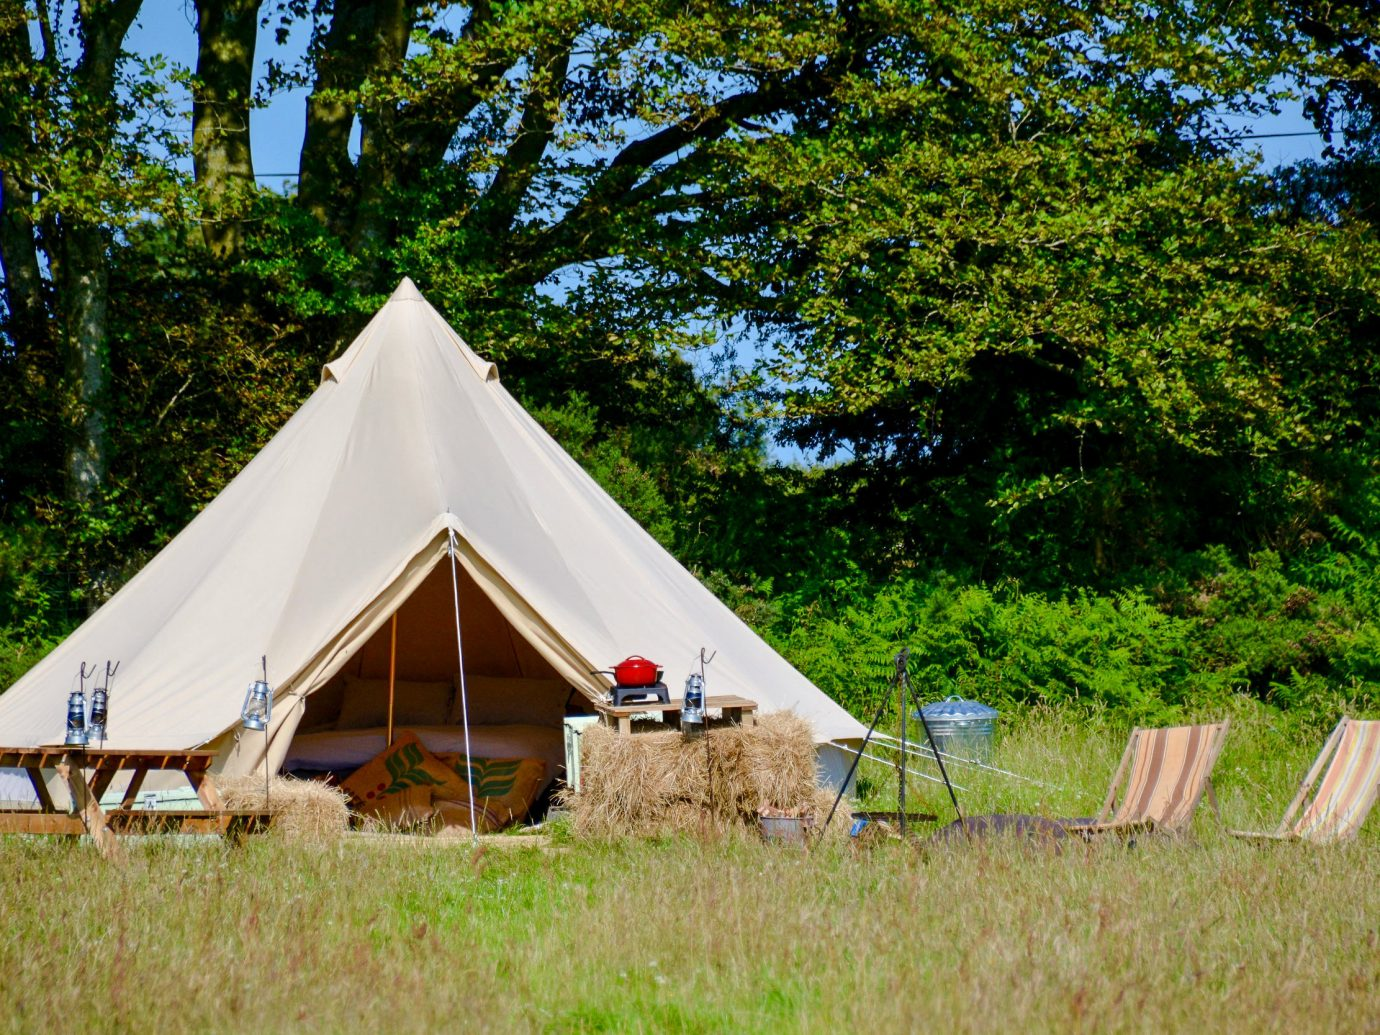 Glamping Outdoors + Adventure Trip Ideas tree grass outdoor tent outdoor object camping hut cottage yurt national park sky landscape recreation lush